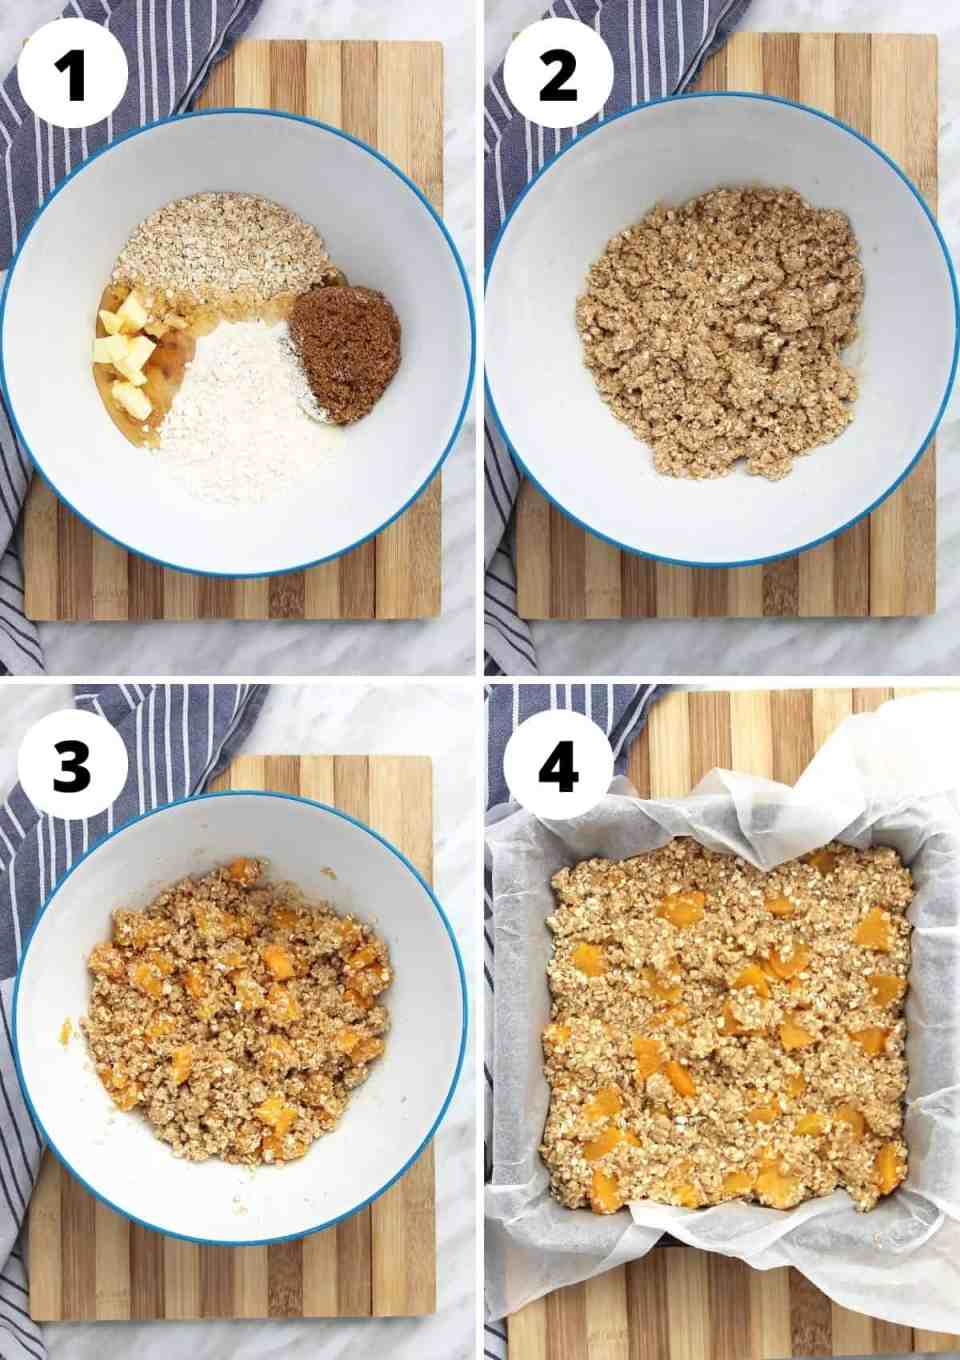 Four photos to show how to mix the ingredients and press into the tin.